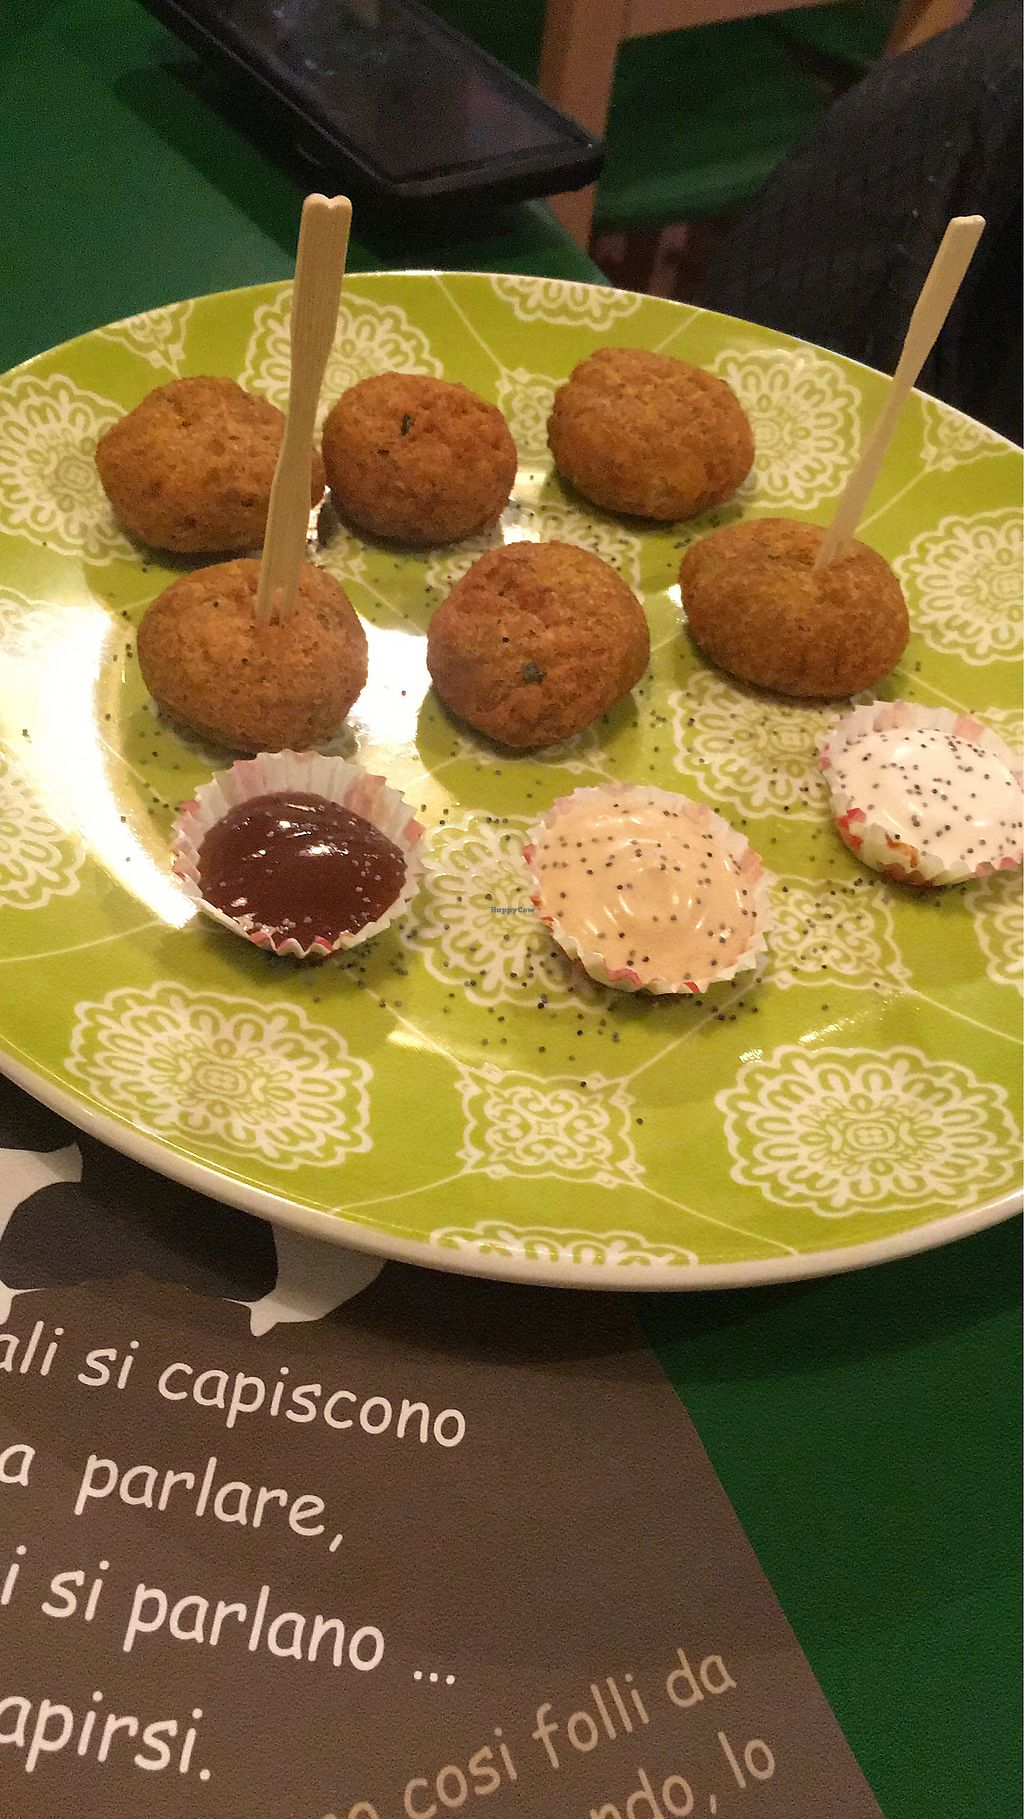 """Photo of JustVeggie  by <a href=""""/members/profile/VeganAbroad"""">VeganAbroad</a> <br/>Falafel  <br/> February 26, 2018  - <a href='/contact/abuse/image/86181/364105'>Report</a>"""